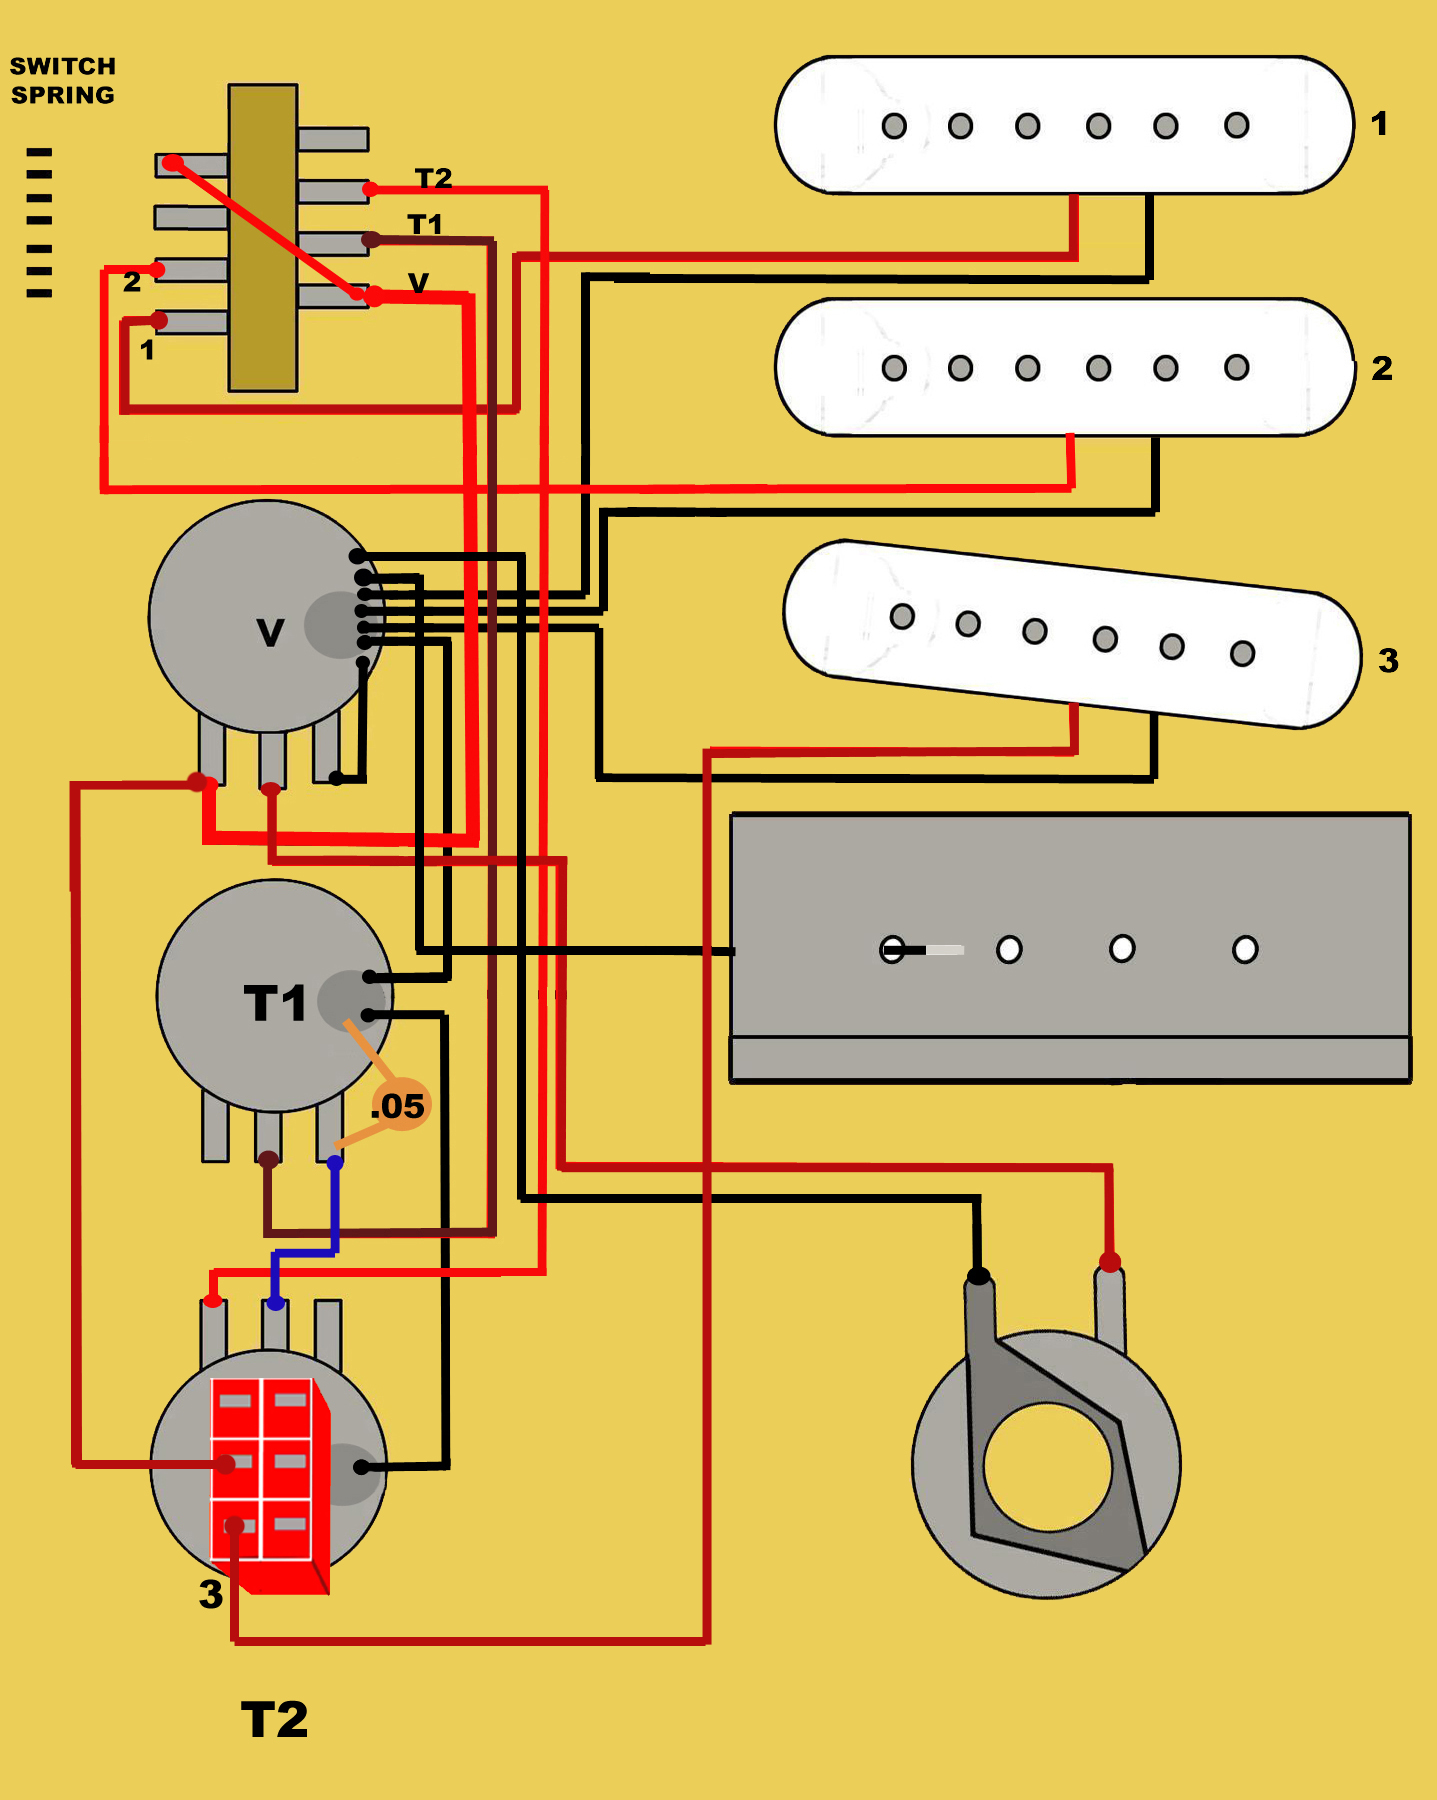 guitar electronics pickups switch wiring diagrams book Guitar Wiring For Dummies best guitar wiring books